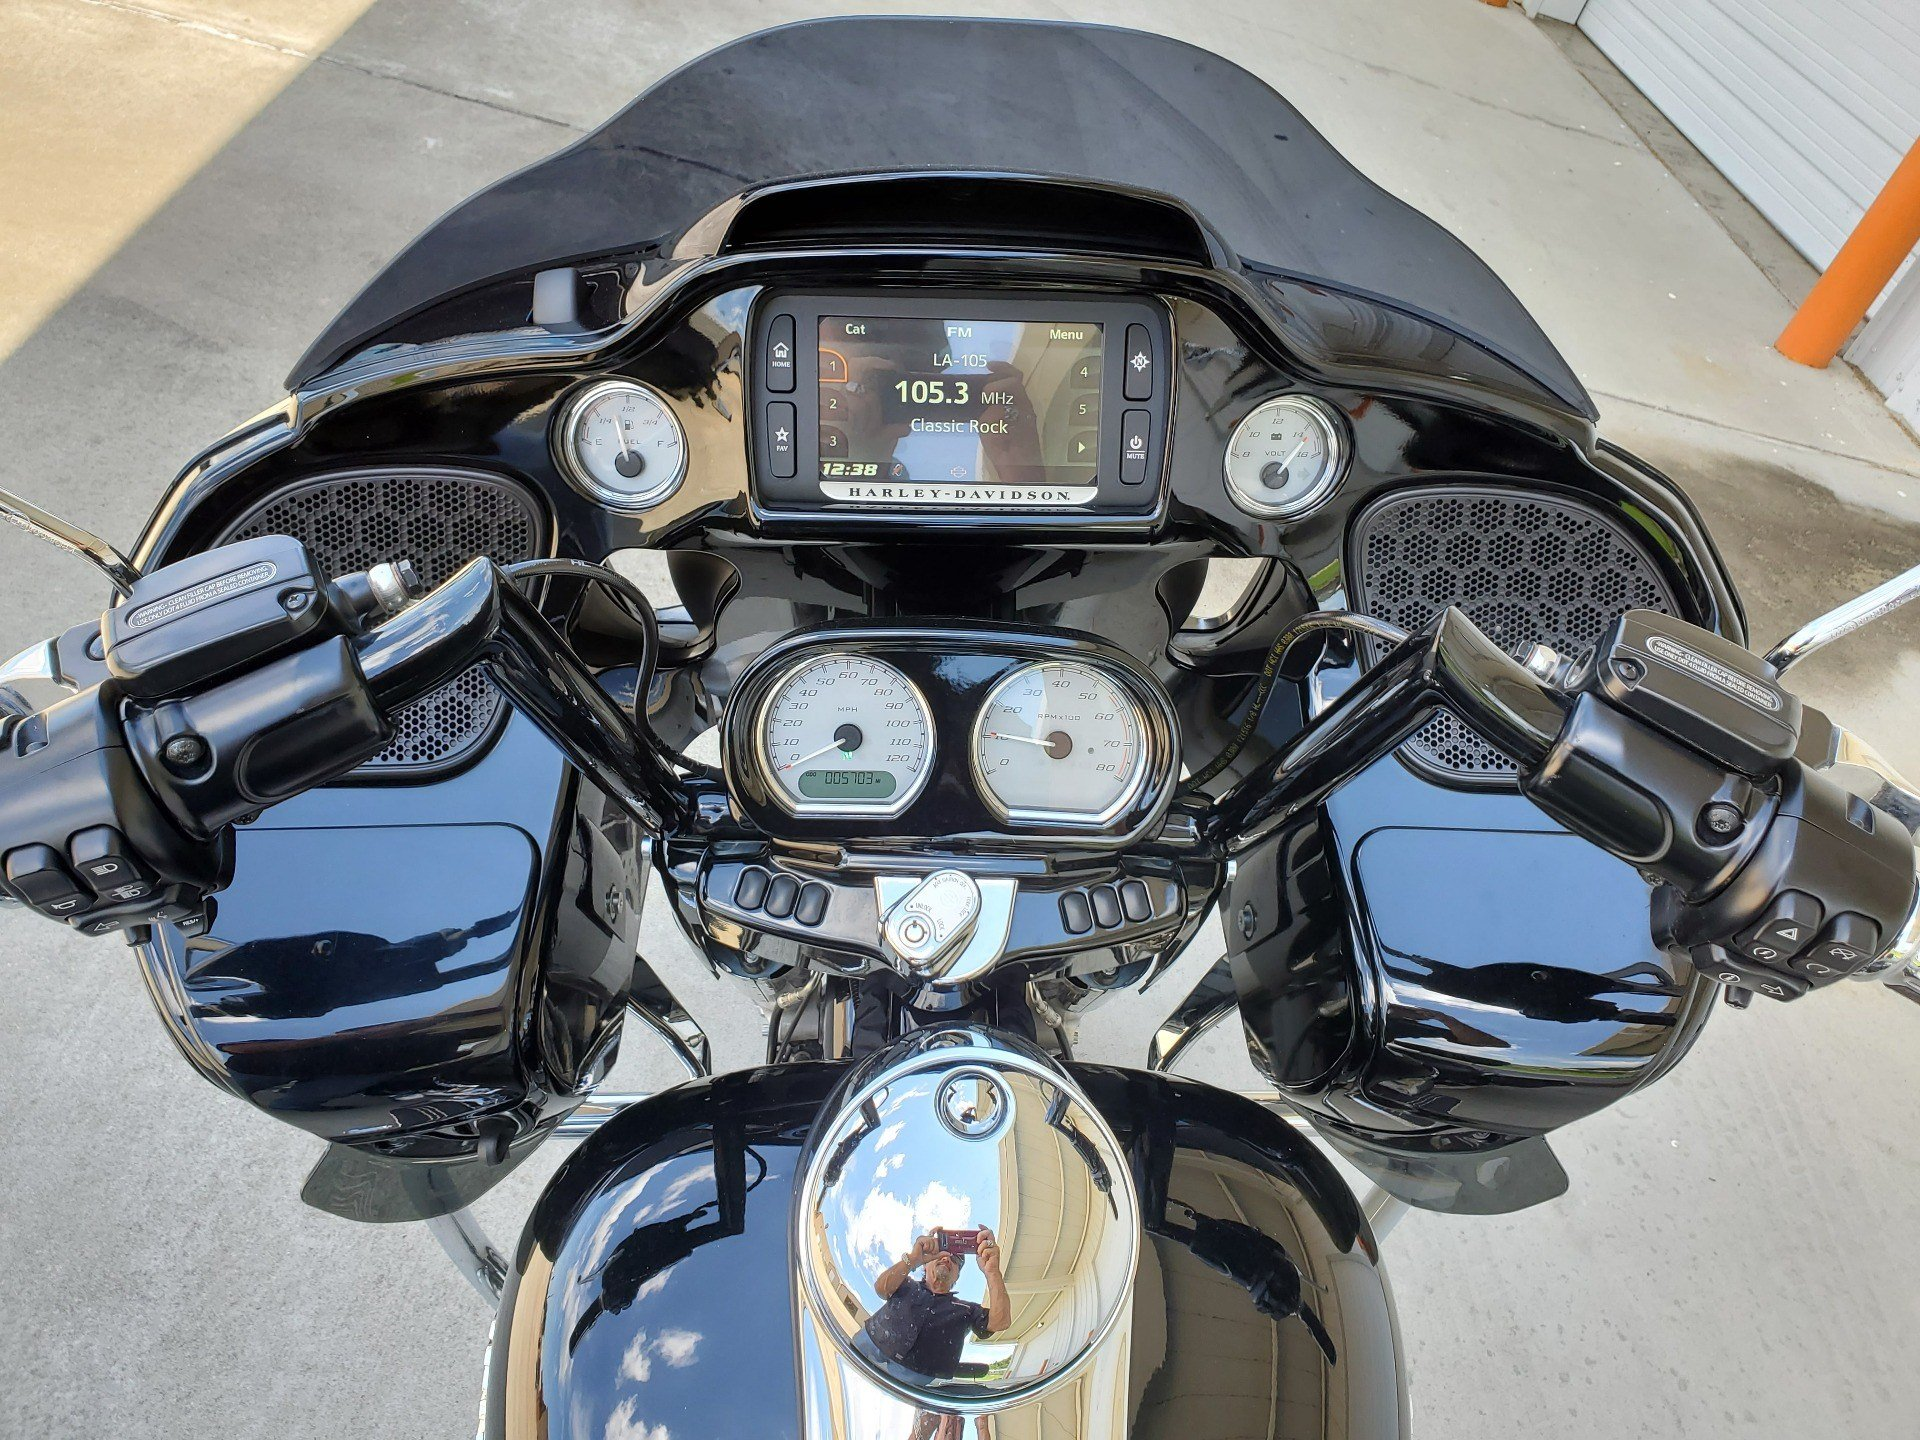 2017 Harley-Davidson Road Glide® Special in Monroe, Louisiana - Photo 12